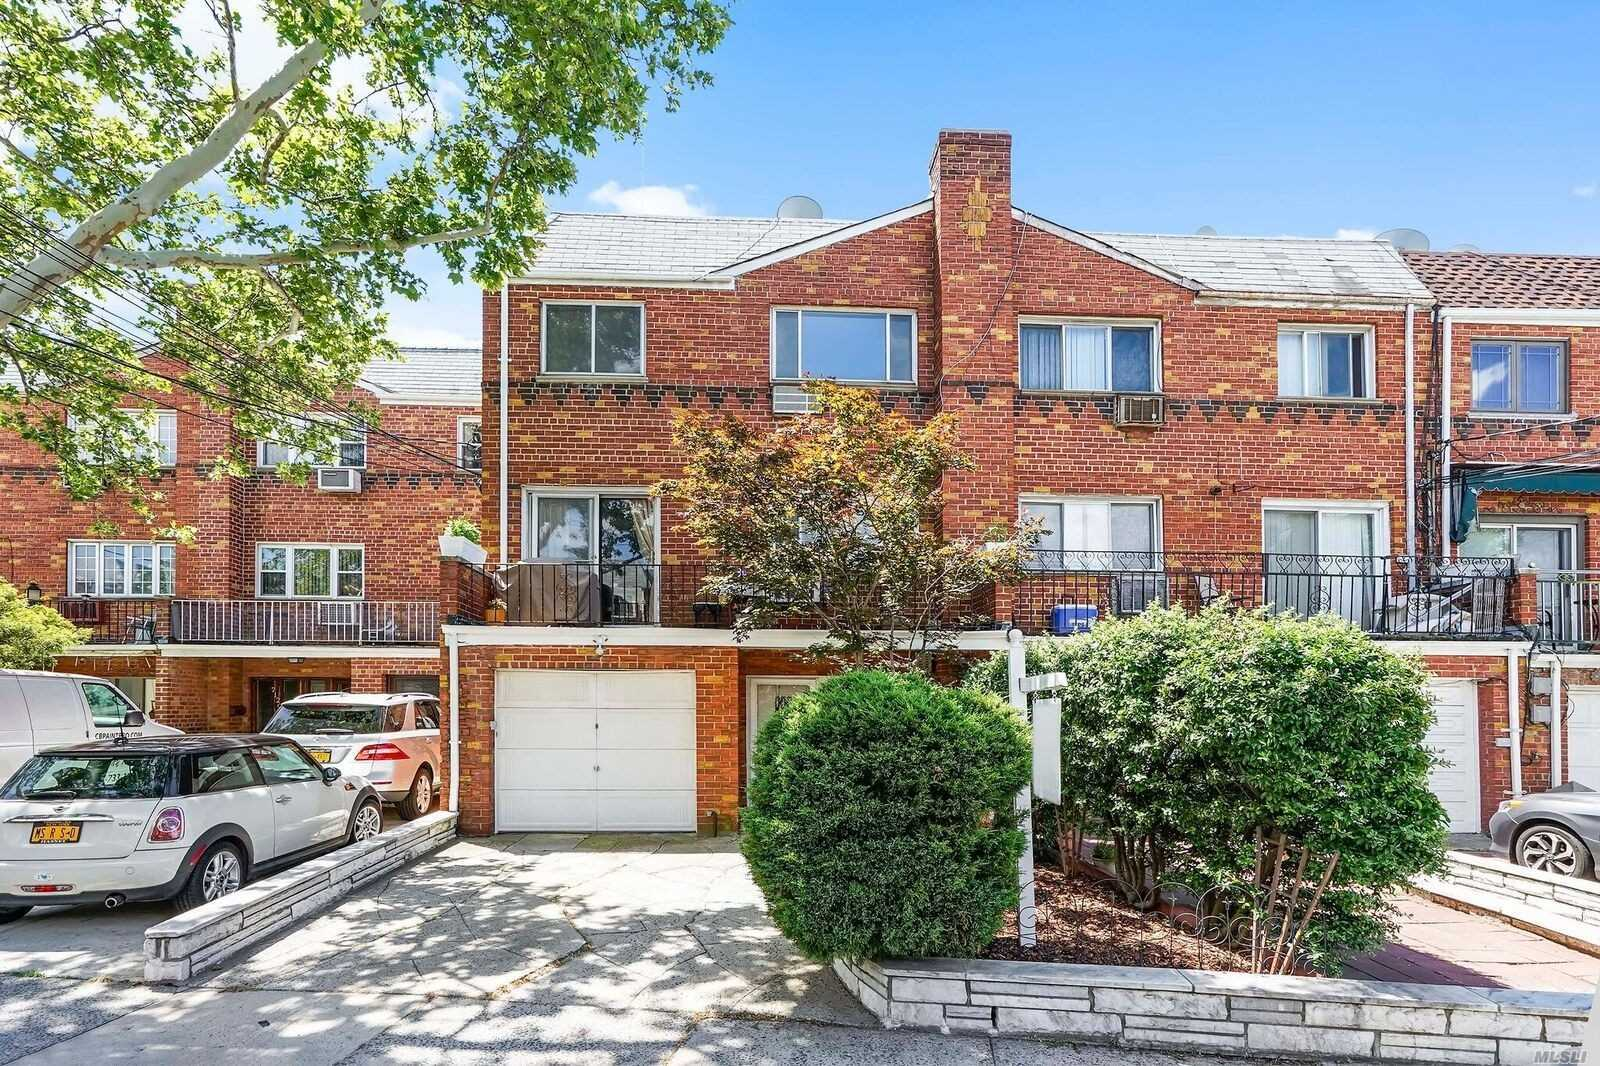 Brick 3 Family Home. Wood Floors, Front And Rear 2nd Floor Balconies, Private Yard, 1 Car Garage, Private Driveway.